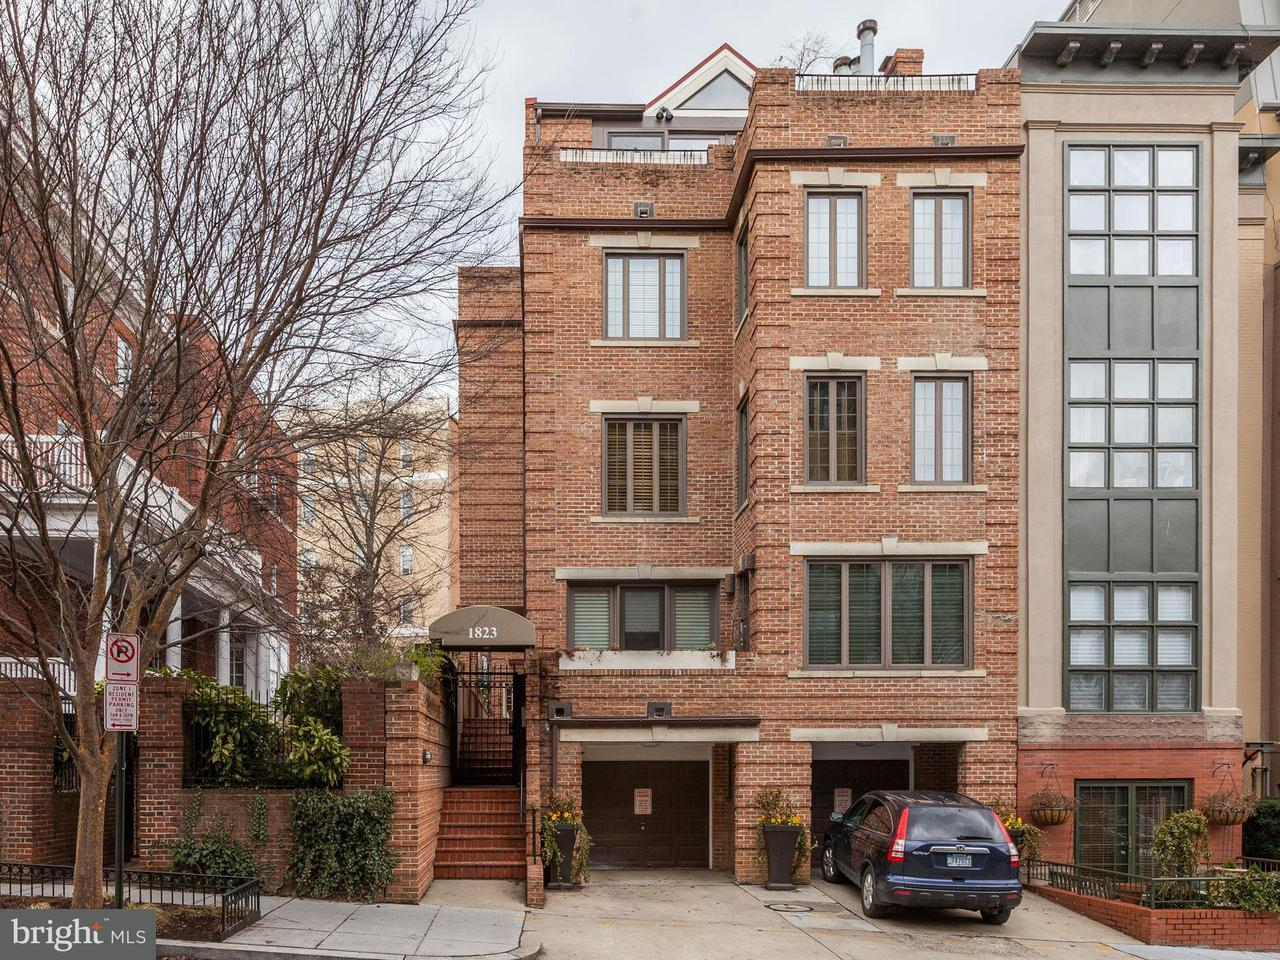 Townhouse for Sale at 1823 Belmont Rd Nw #C 1823 Belmont Rd Nw #C Washington, District Of Columbia 20009 United States